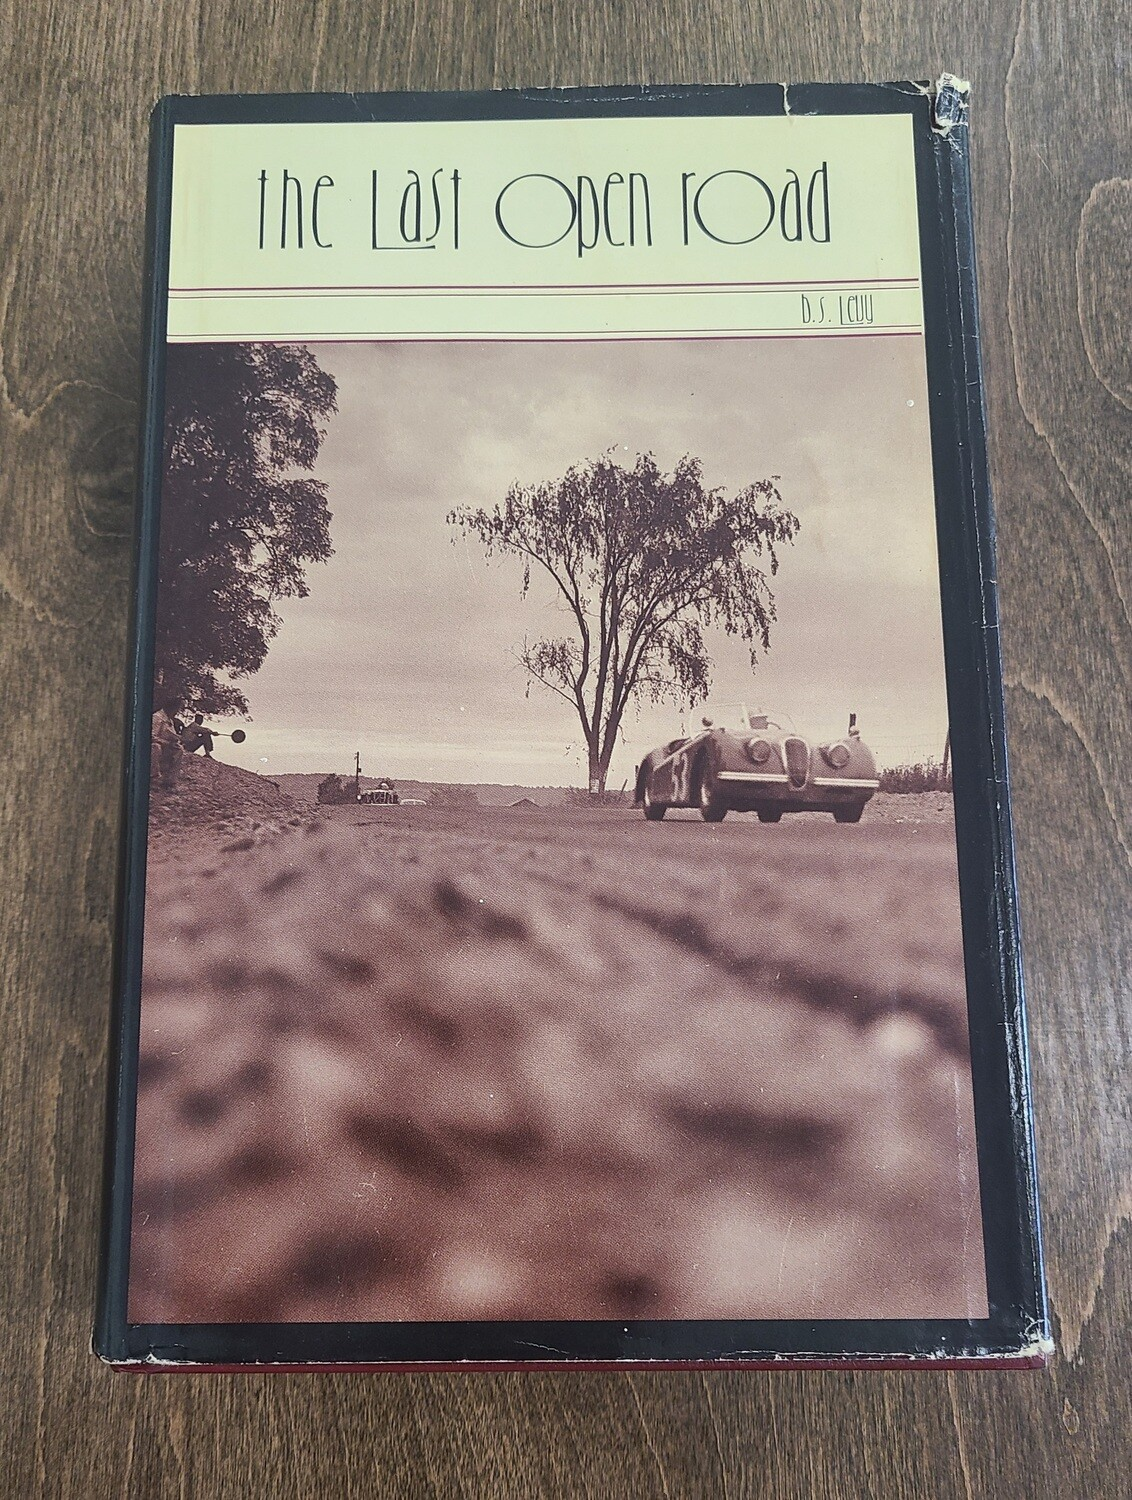 The Last Open Road by Burt S. Levy